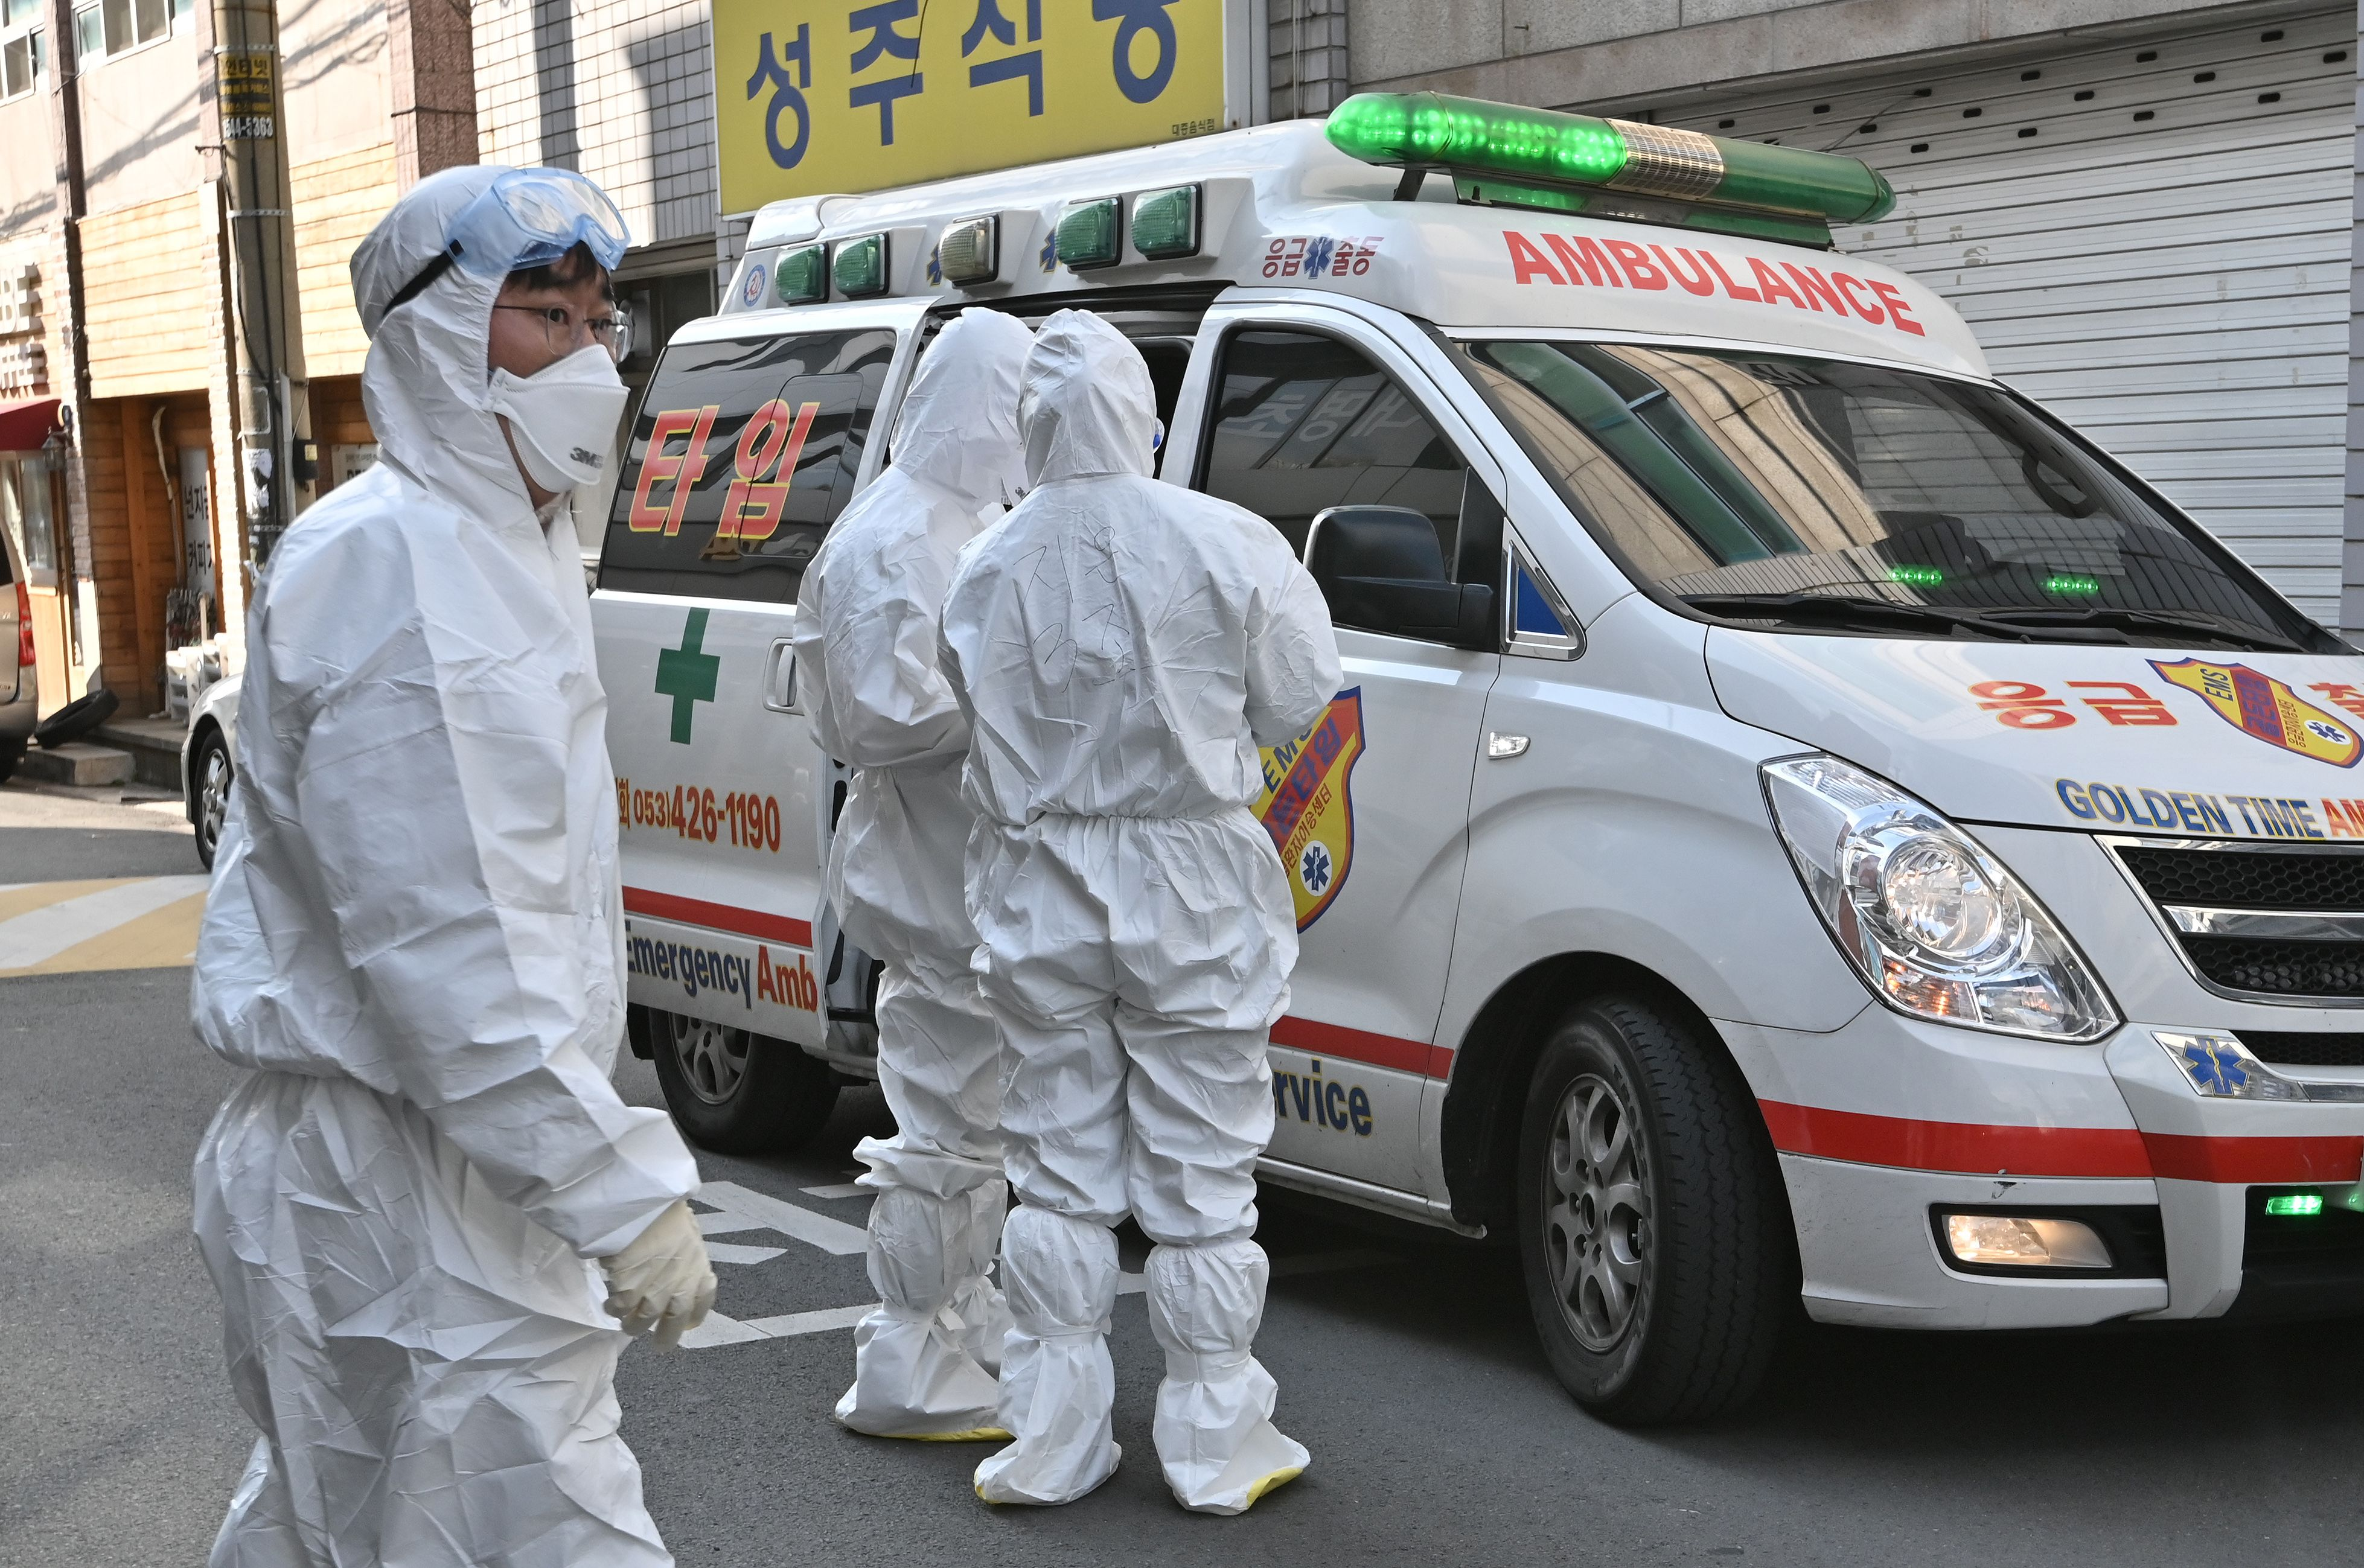 South Korean medical workers wearing protective gear visit a residence of people with suspected symptoms of the coronavirus in Daegu on Thursday.